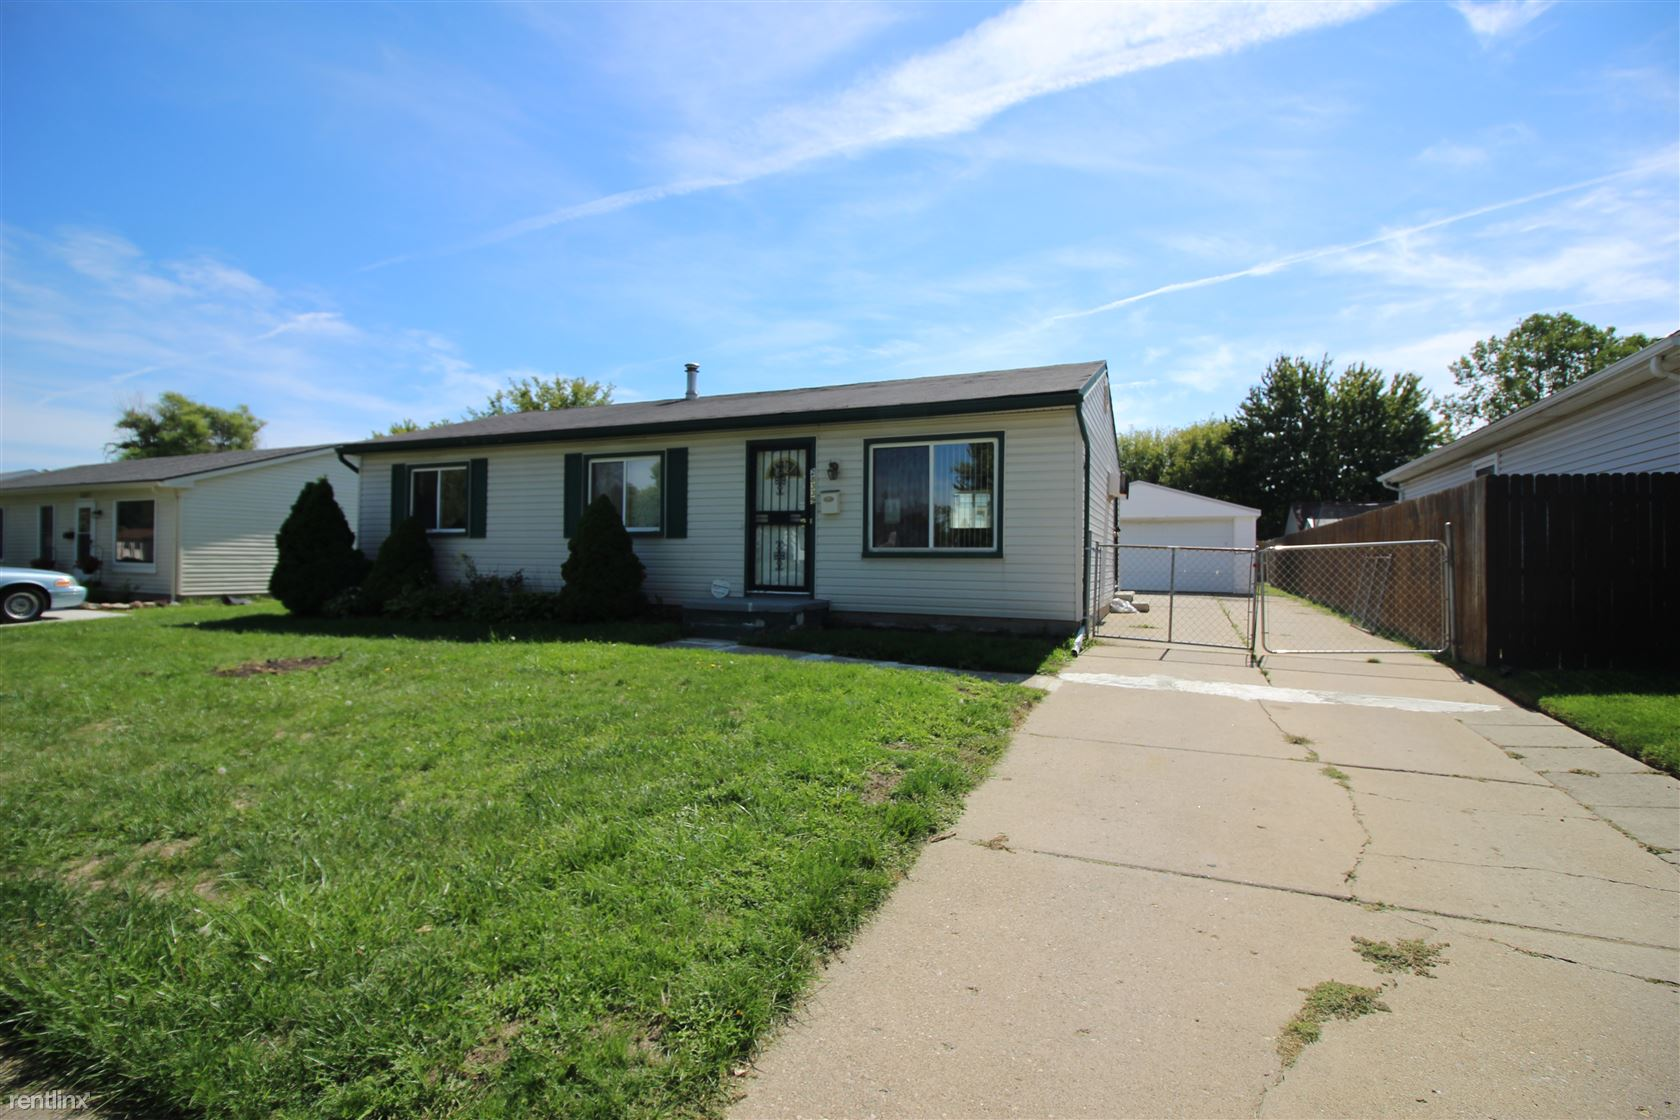 House for Rent in Romulus